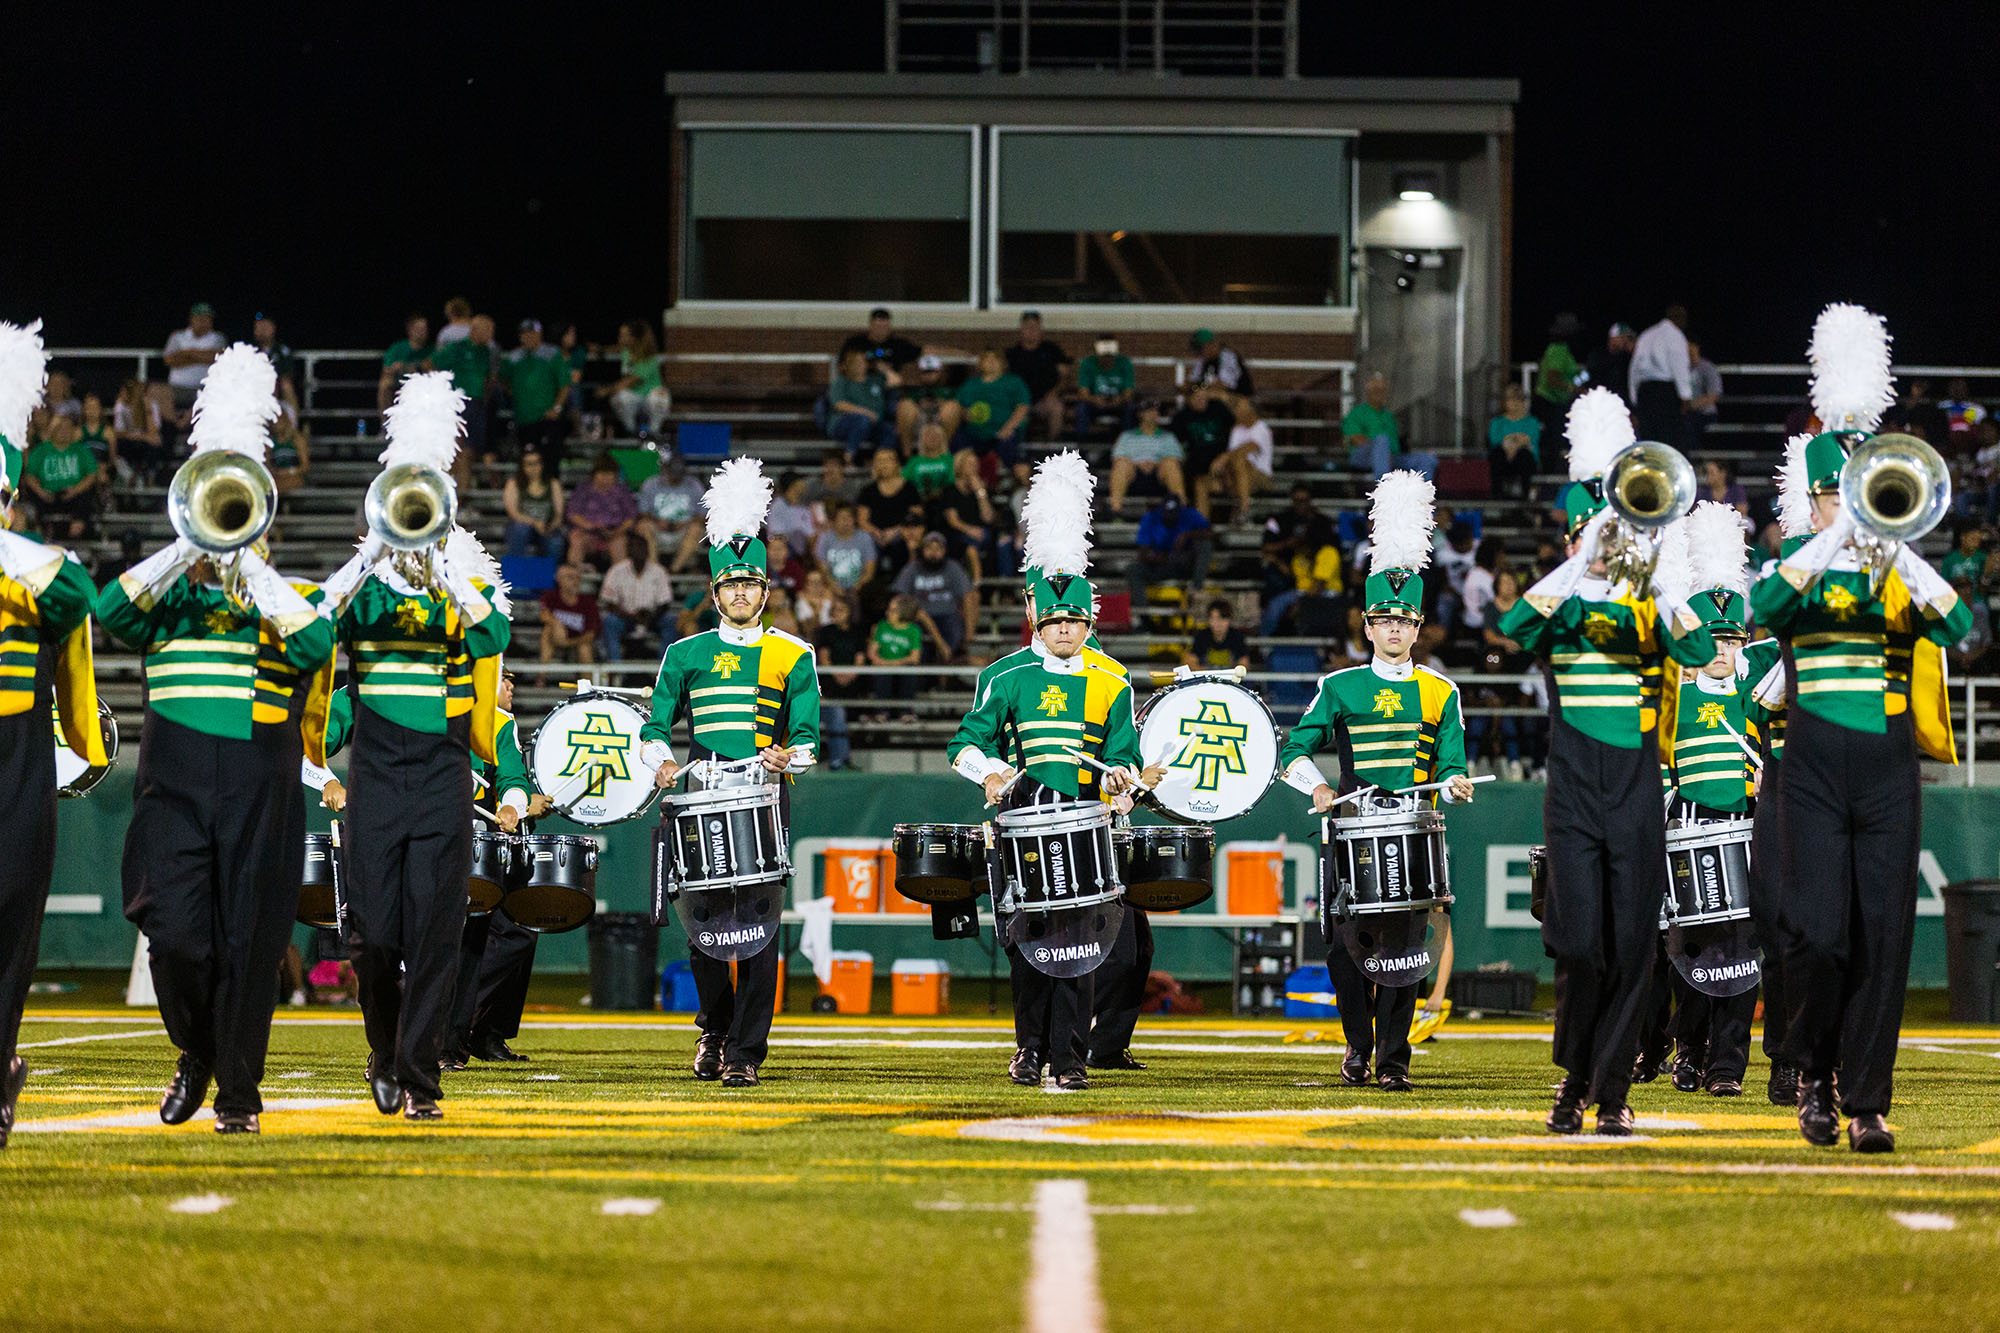 the marching band performs at halftime of an ATU football game